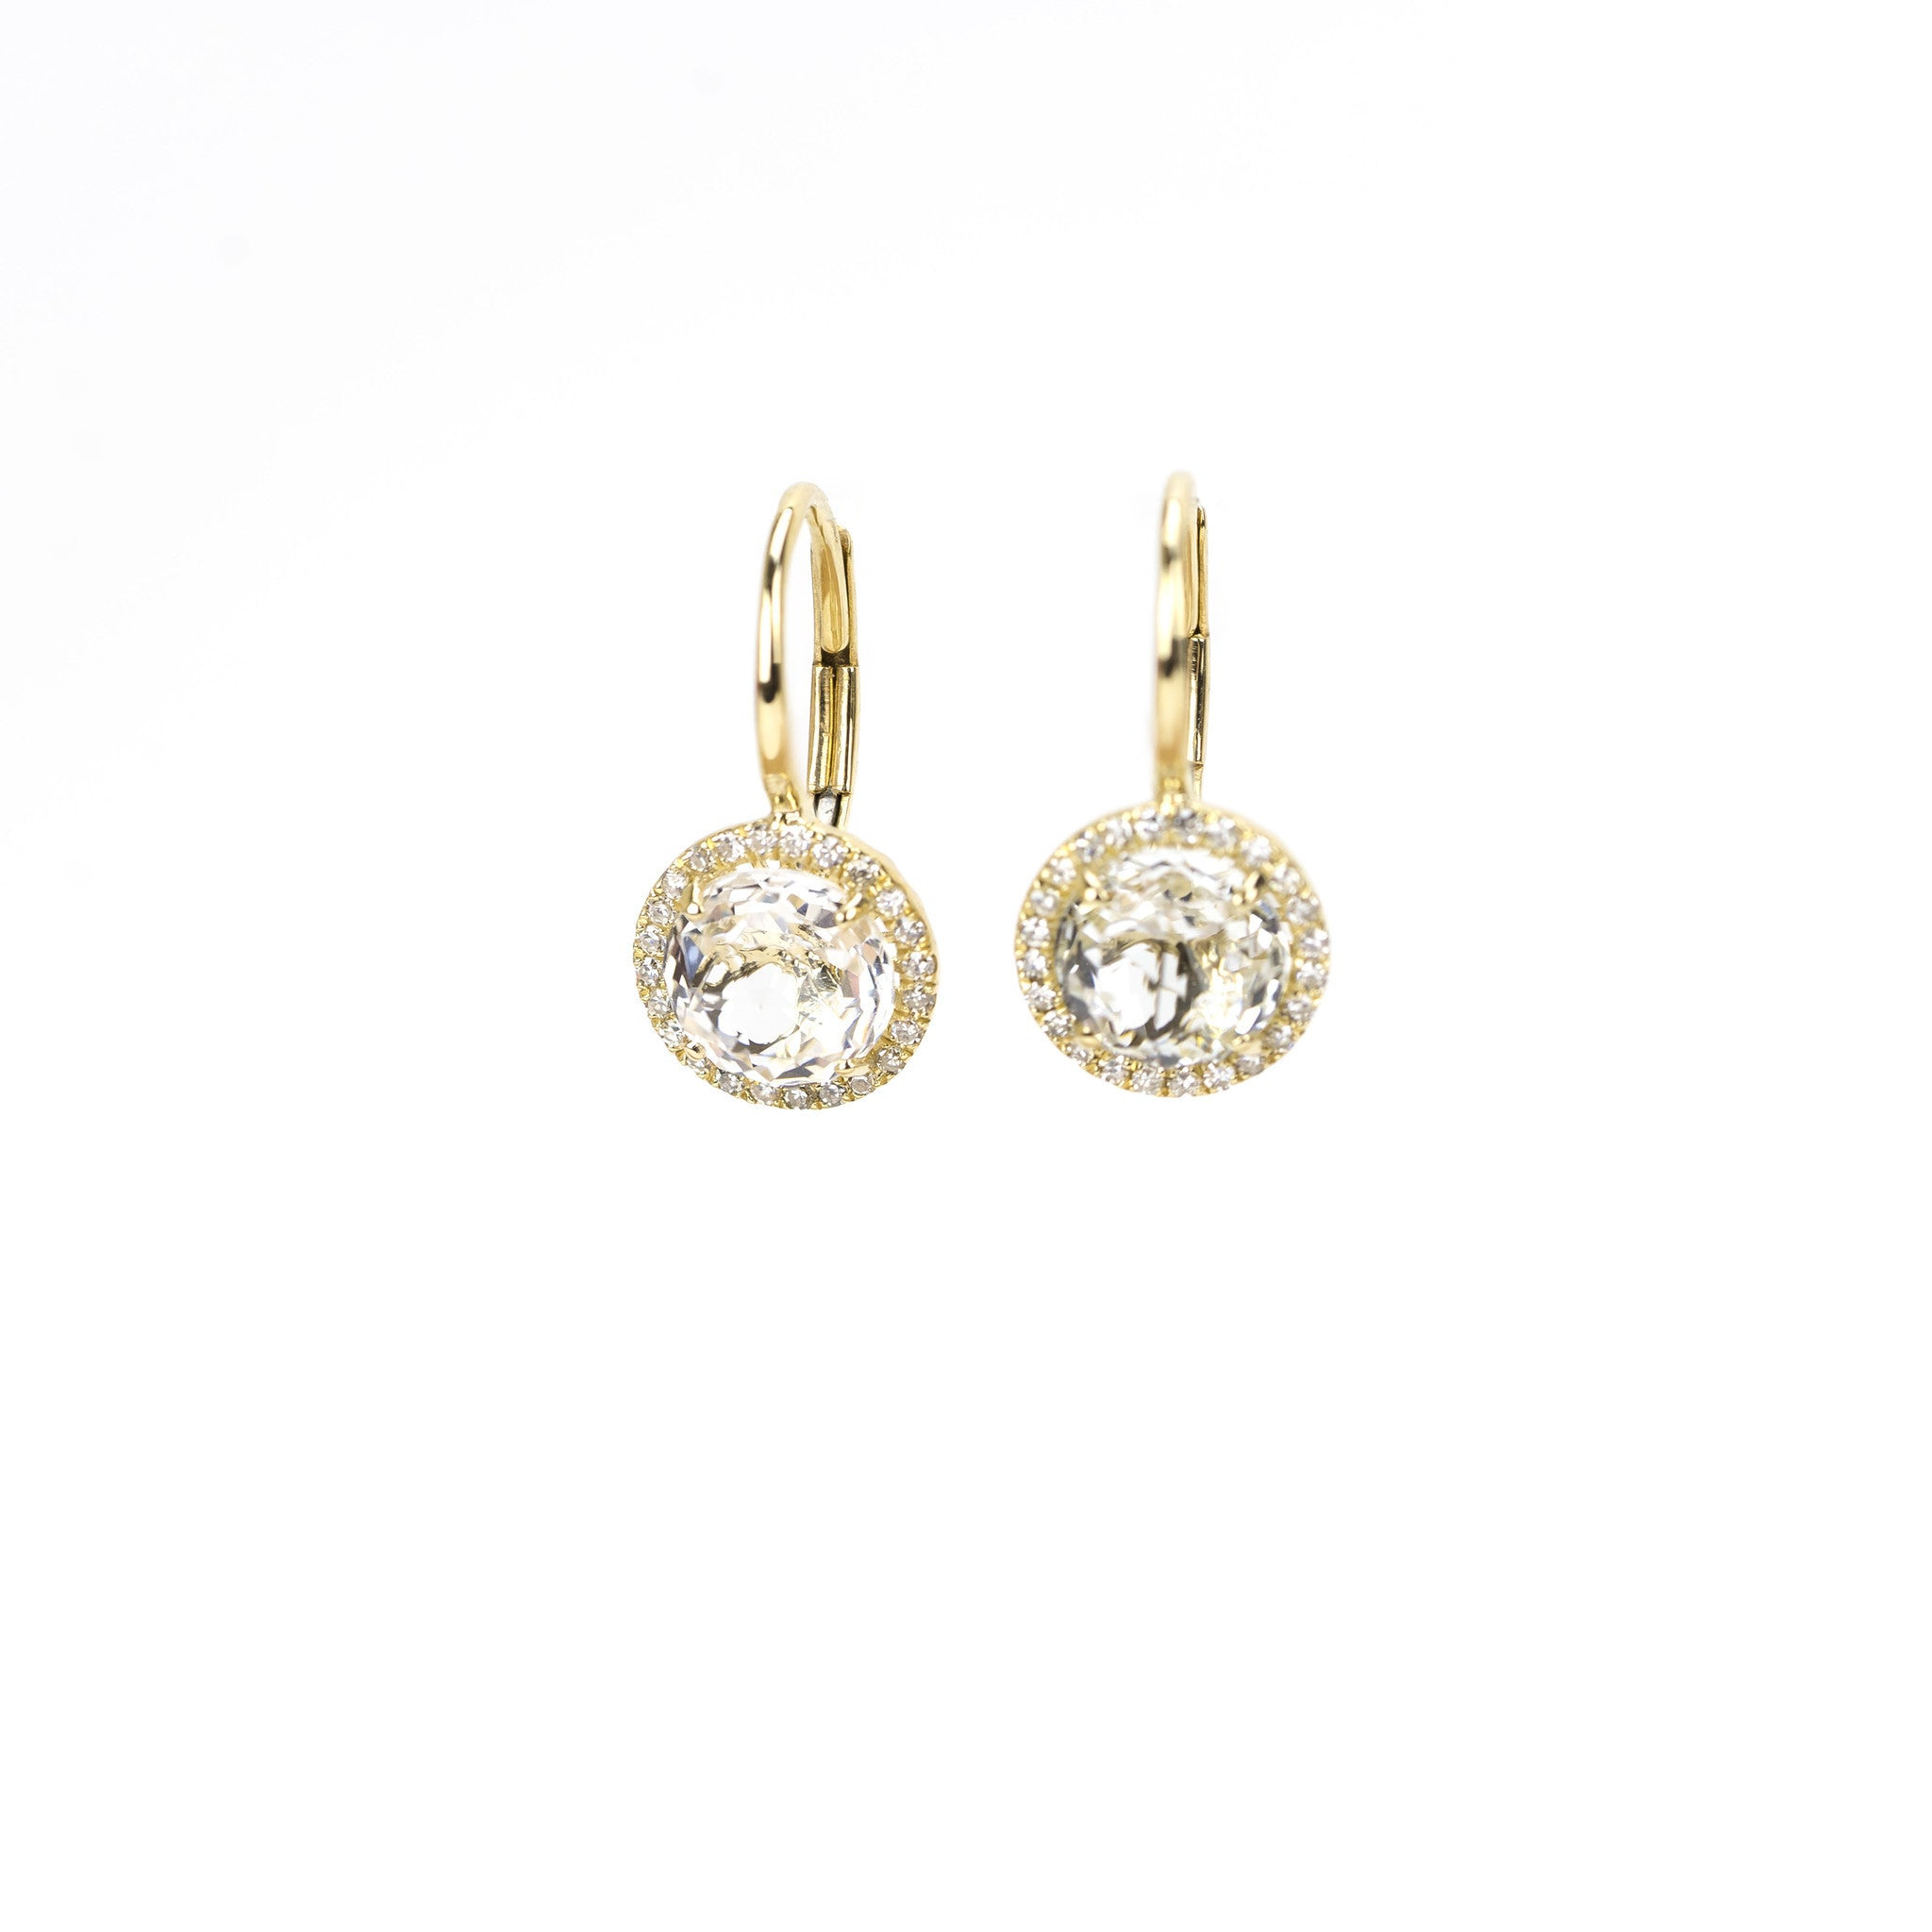 White Topaz Round Drop Earrings by Atheria Jewelry